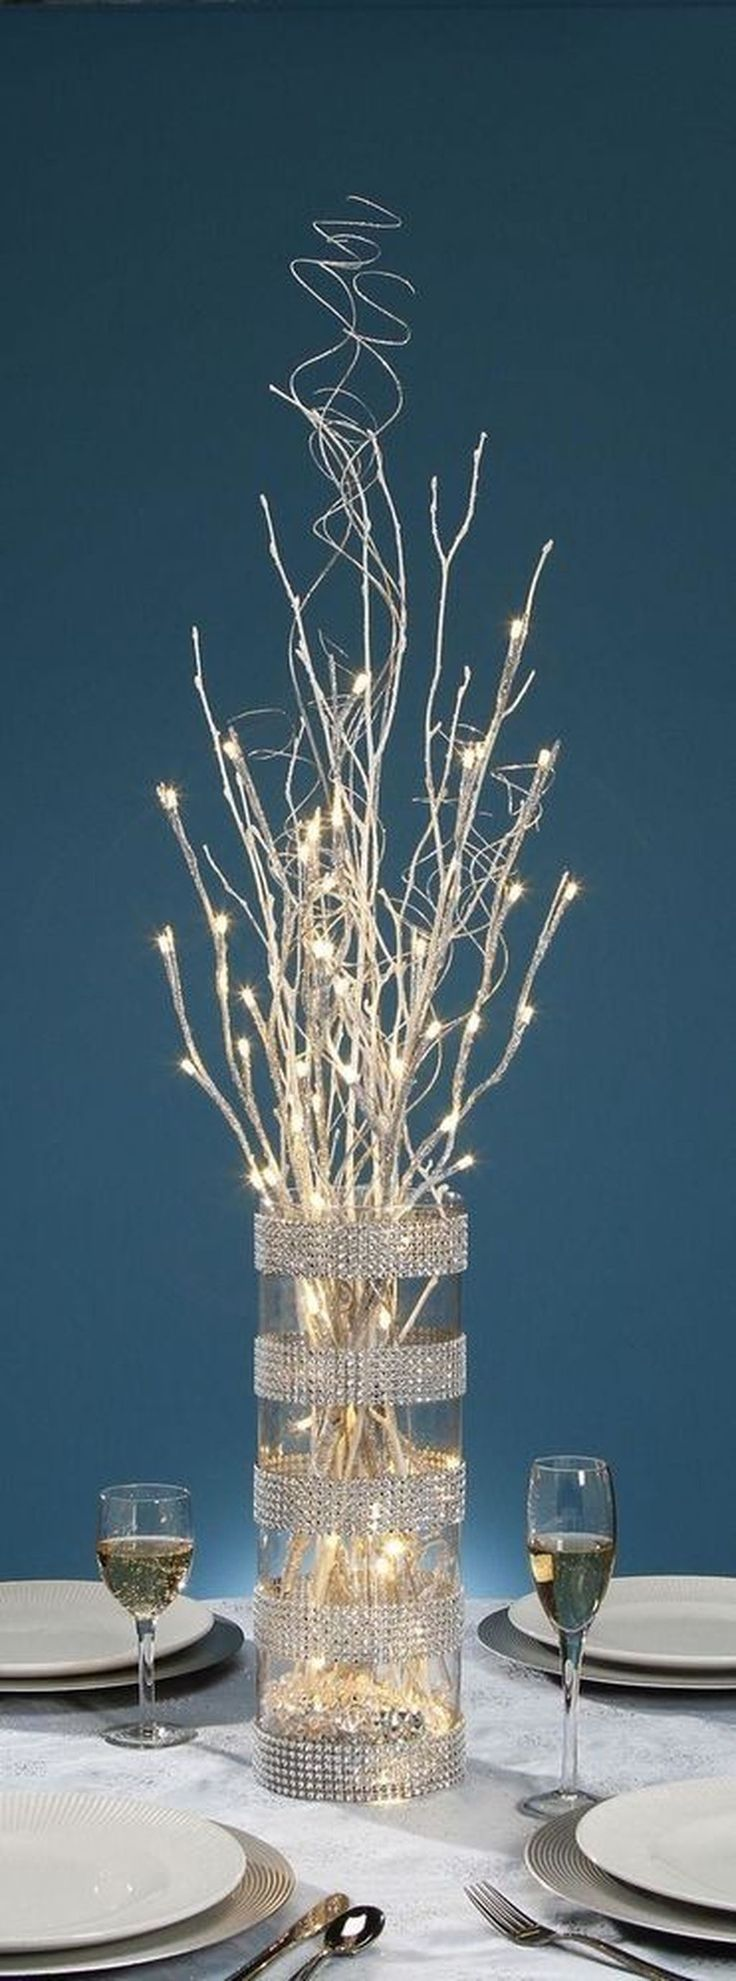 Nice 99 Inspiring Modern Rustic Christmas Centerpieces Ideas with Candles. More at http://99homy.com/2017/10/10/99-inspiring-modern-rustic-christmas-centerpieces-ideas-with-candles/